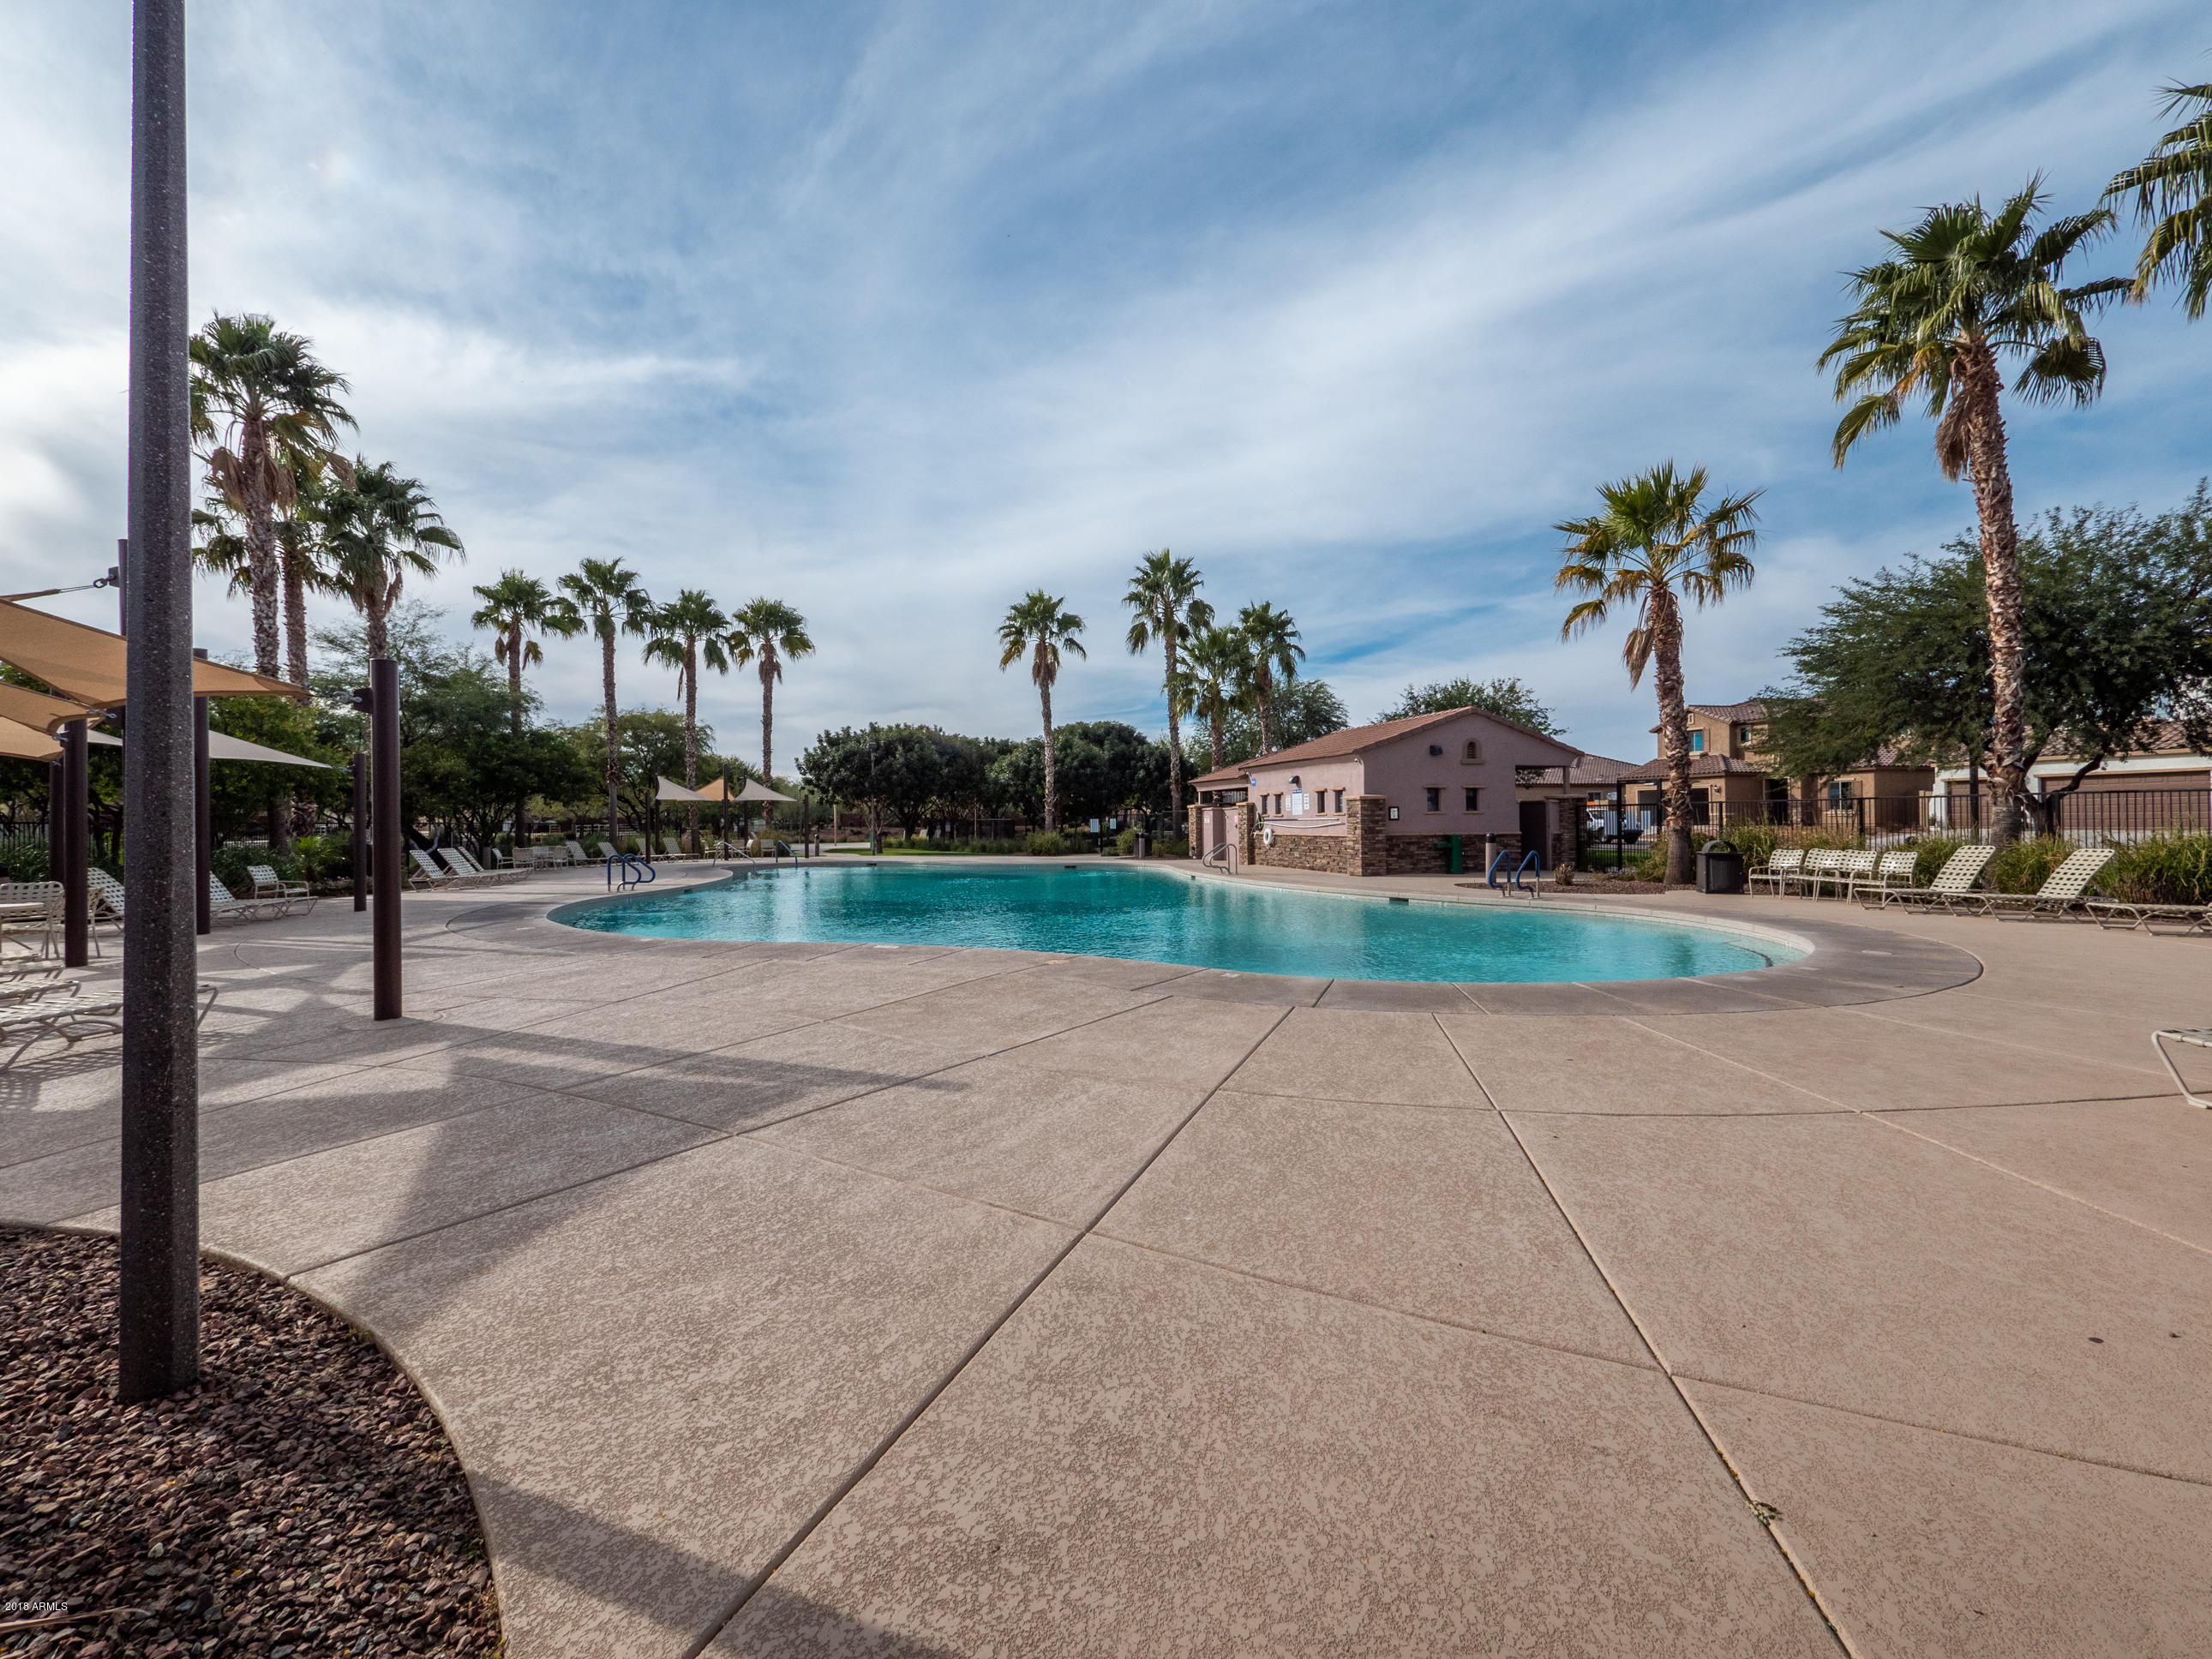 MLS 5847401 17292 W PINNACLE VISTA Drive, Surprise, AZ 85387 Surprise AZ Condo or Townhome